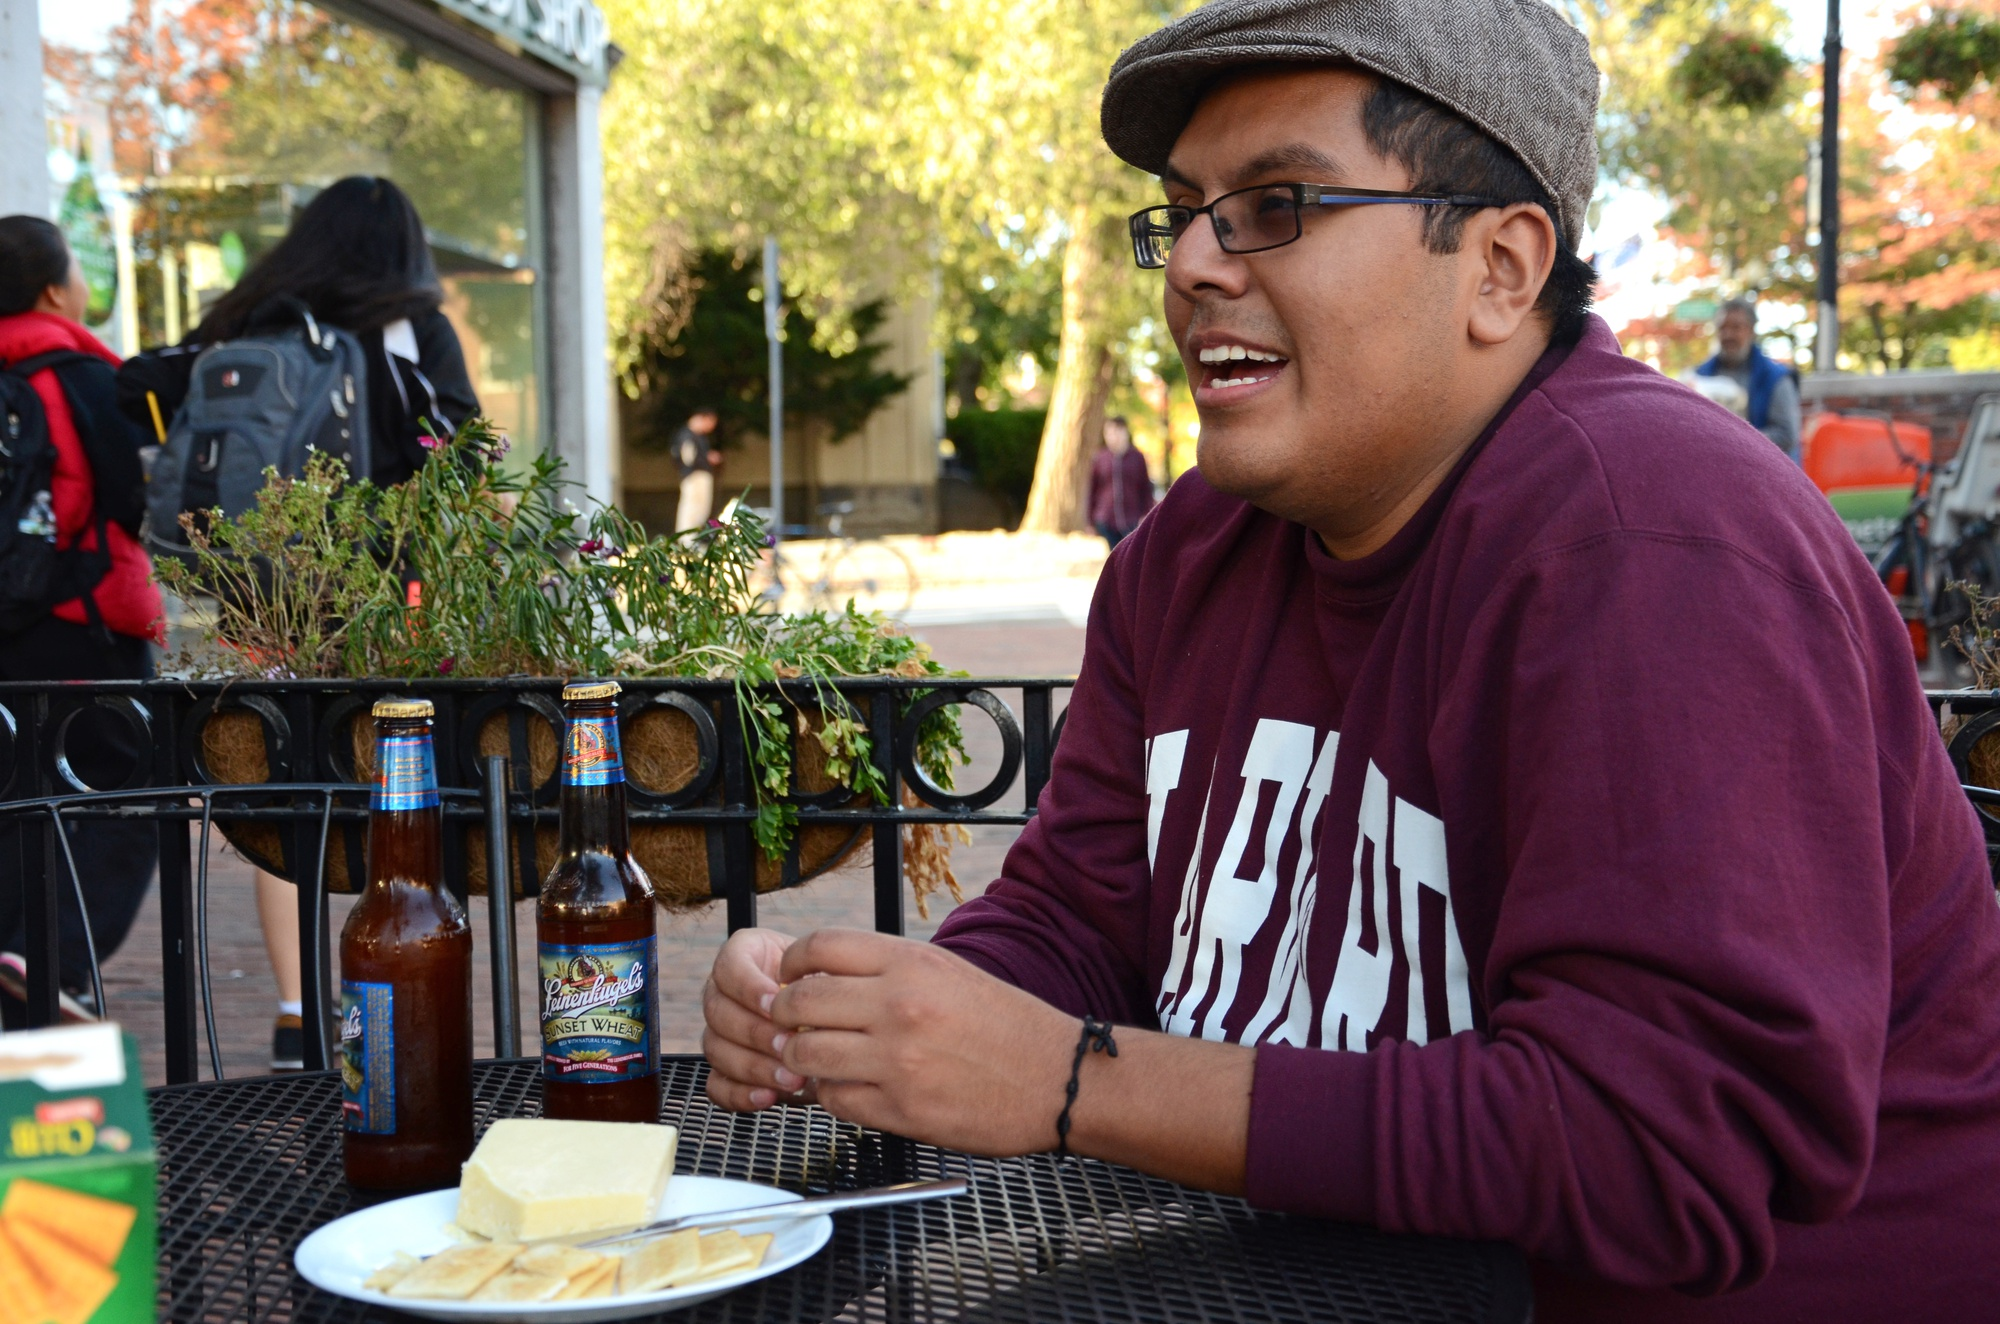 Fernando R. Espino '15, president of the Wisconsin club, discusses Wisconsin traditions and Packer pride over Leinenkugel-brewed beer and cheddar cheese.